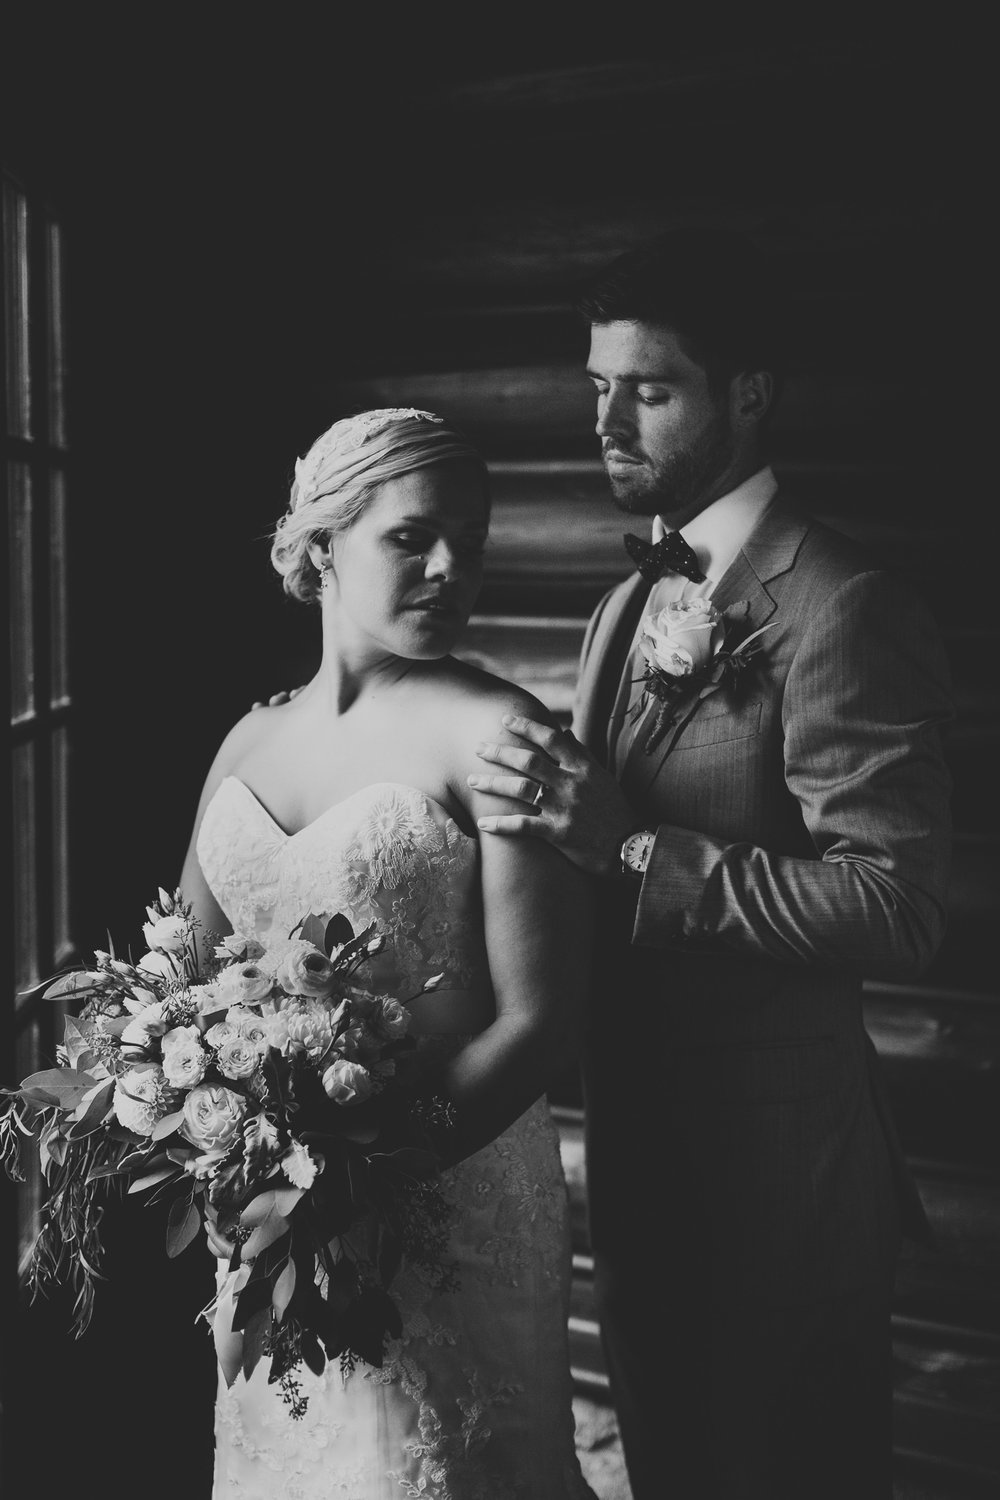 Classical and romantic wedding photography, Ottawa and Western Quebec